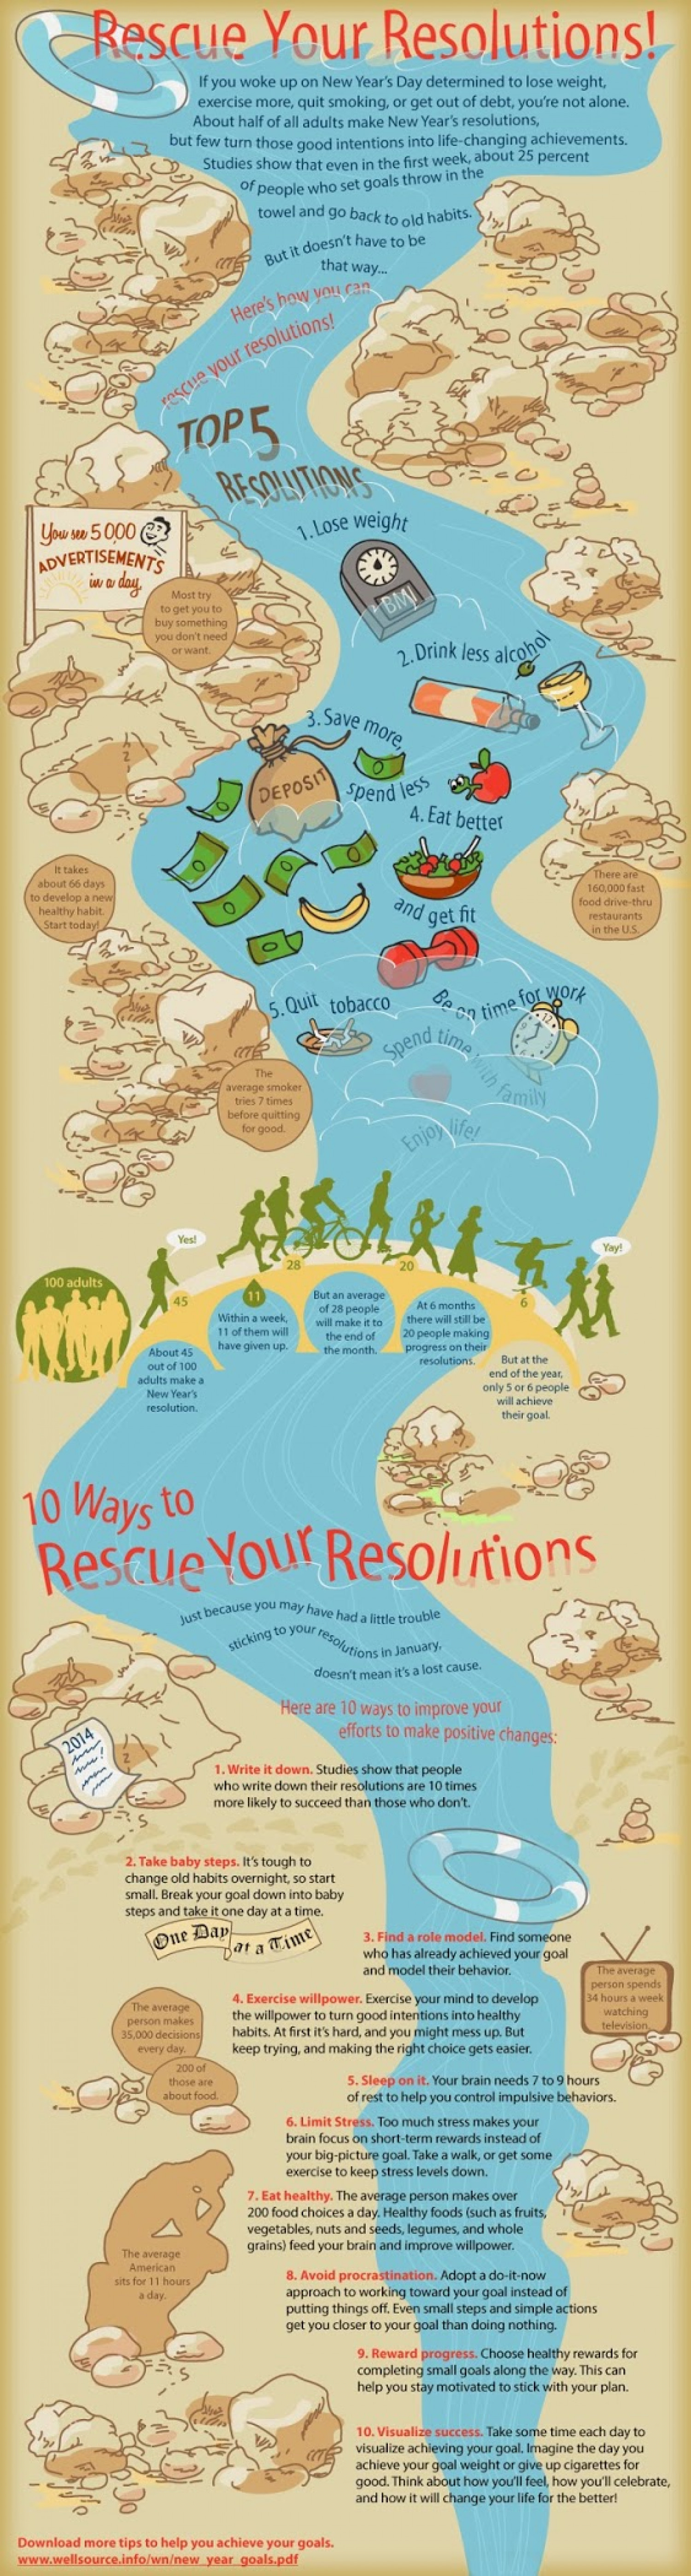 Rescue Your Resolutions Infographic